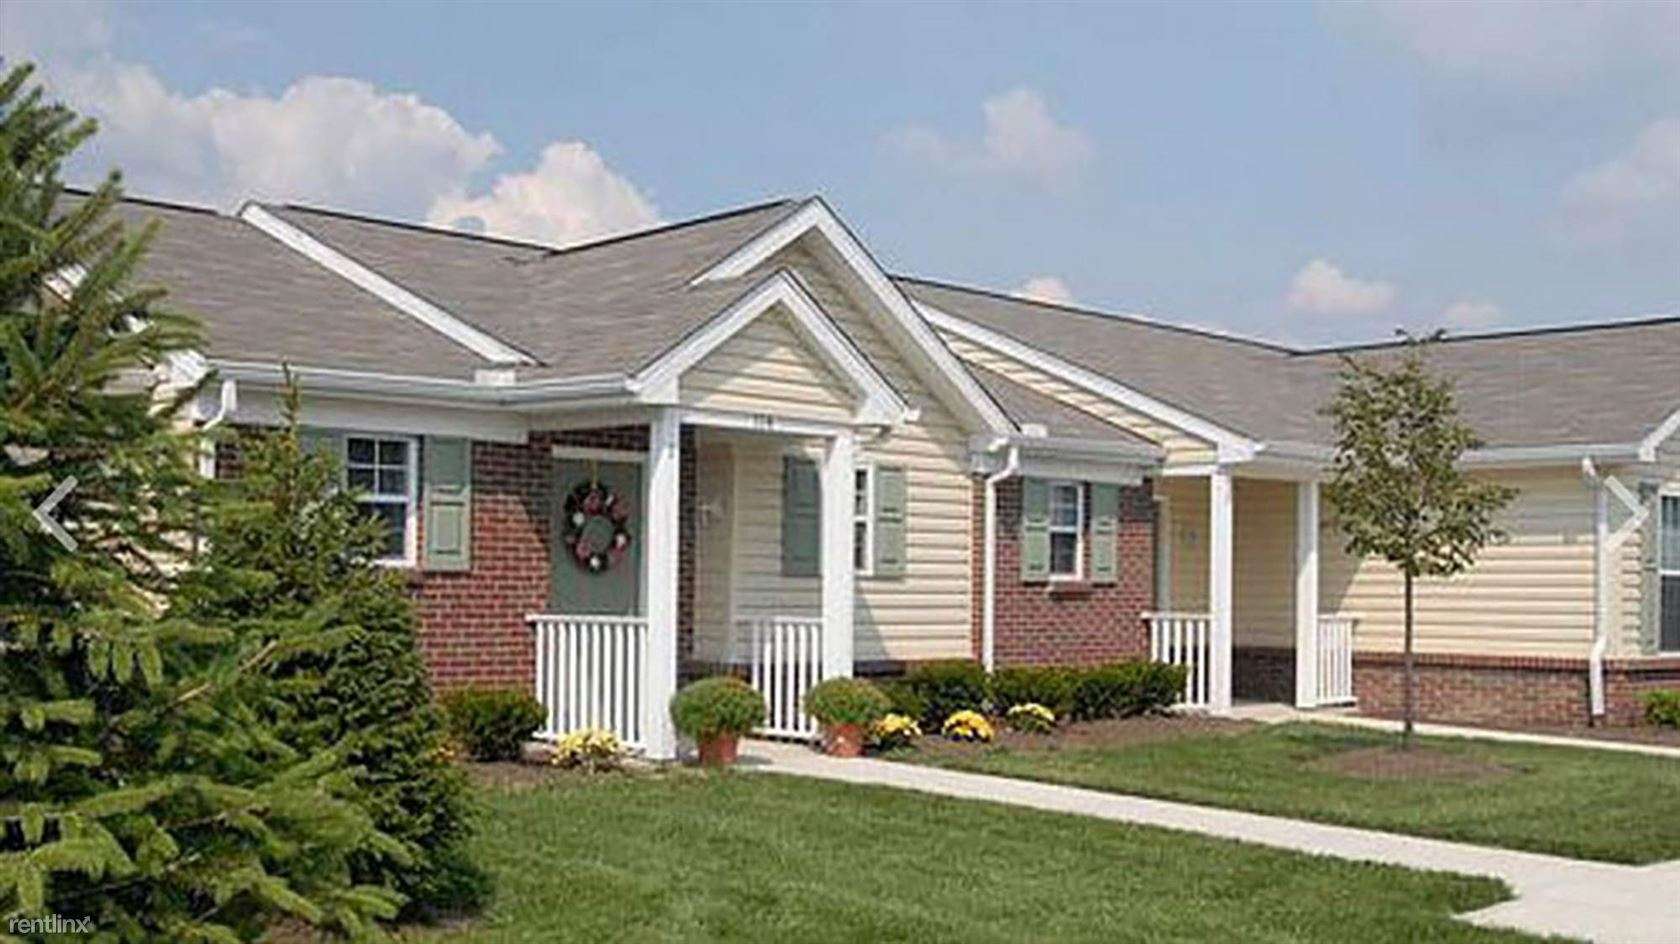 104 River Valley Blvd, New Richmond, OH - $585